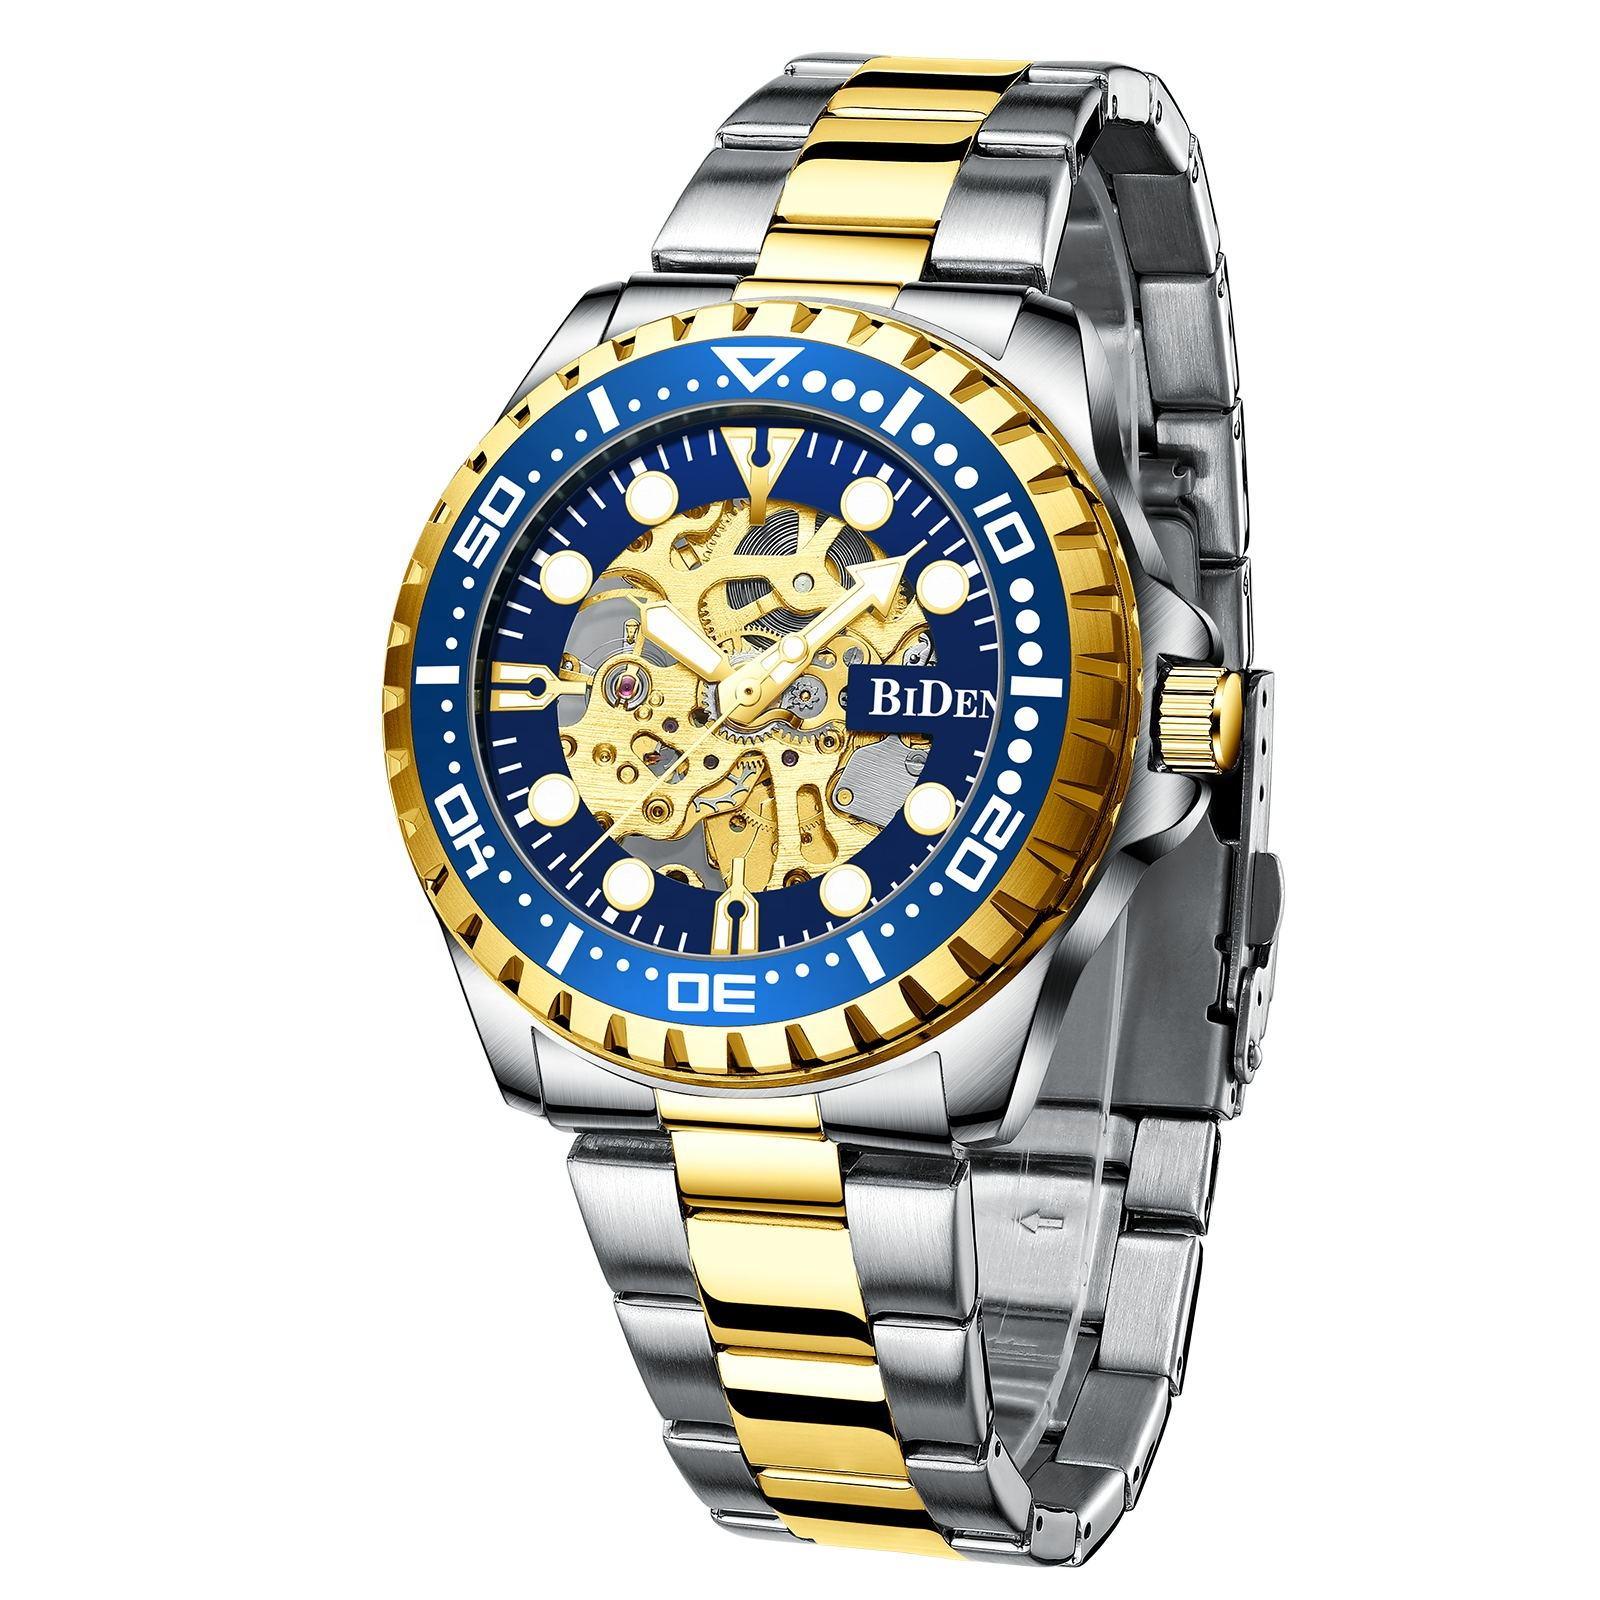 2020 latest hollow stainless steel luxury men automatic mechanical watch